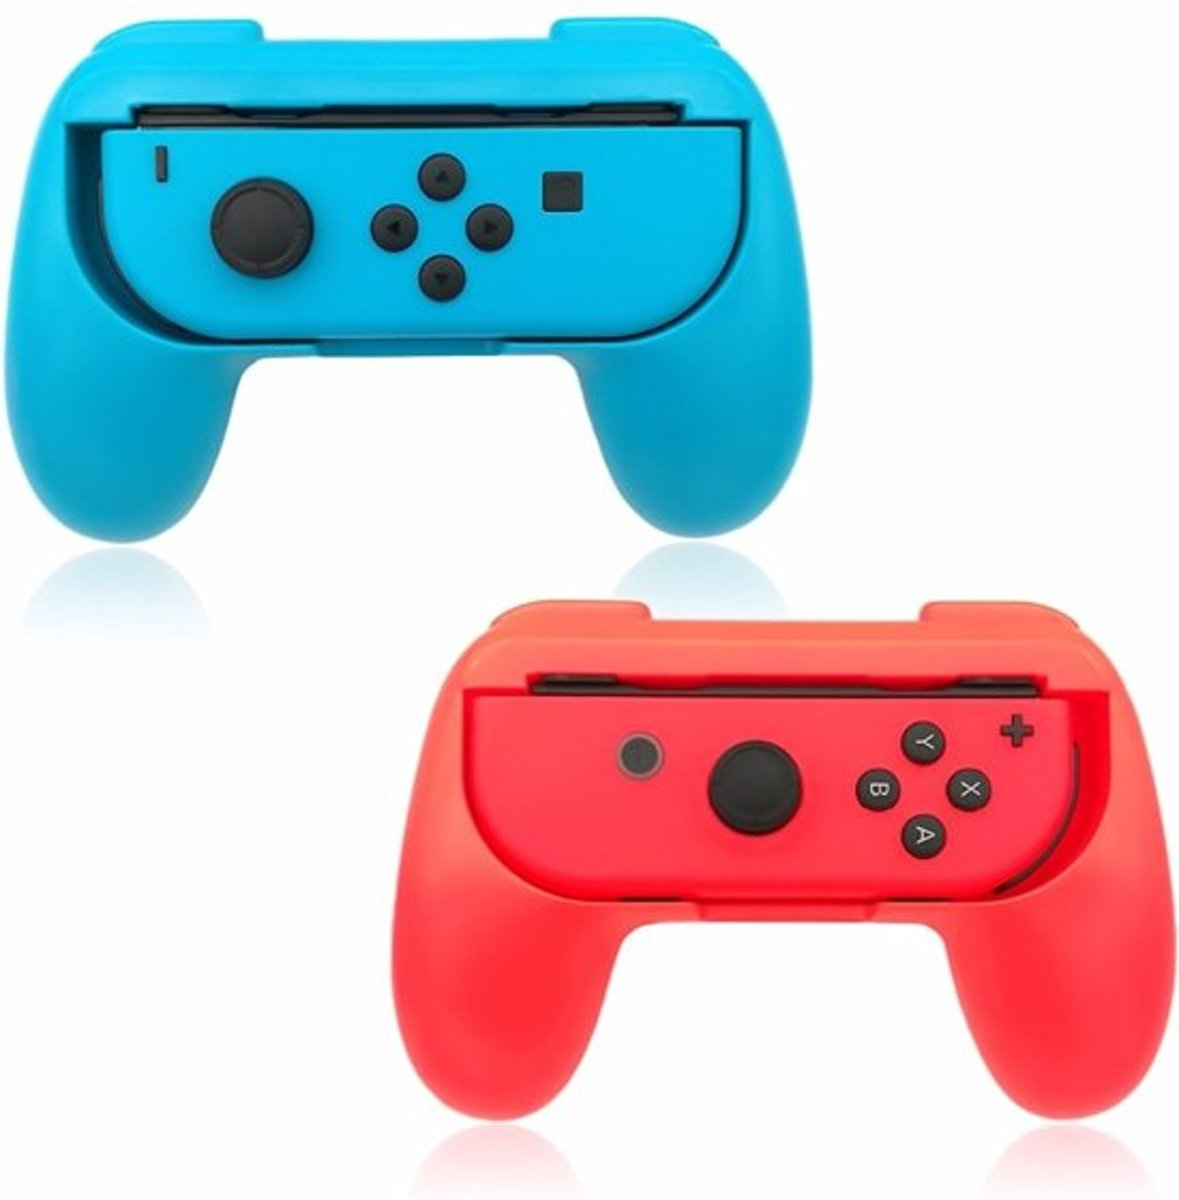 Joy-Con Grip Kit Set Hand Grips voor Nintendo Switch -   - Rood / Blauw